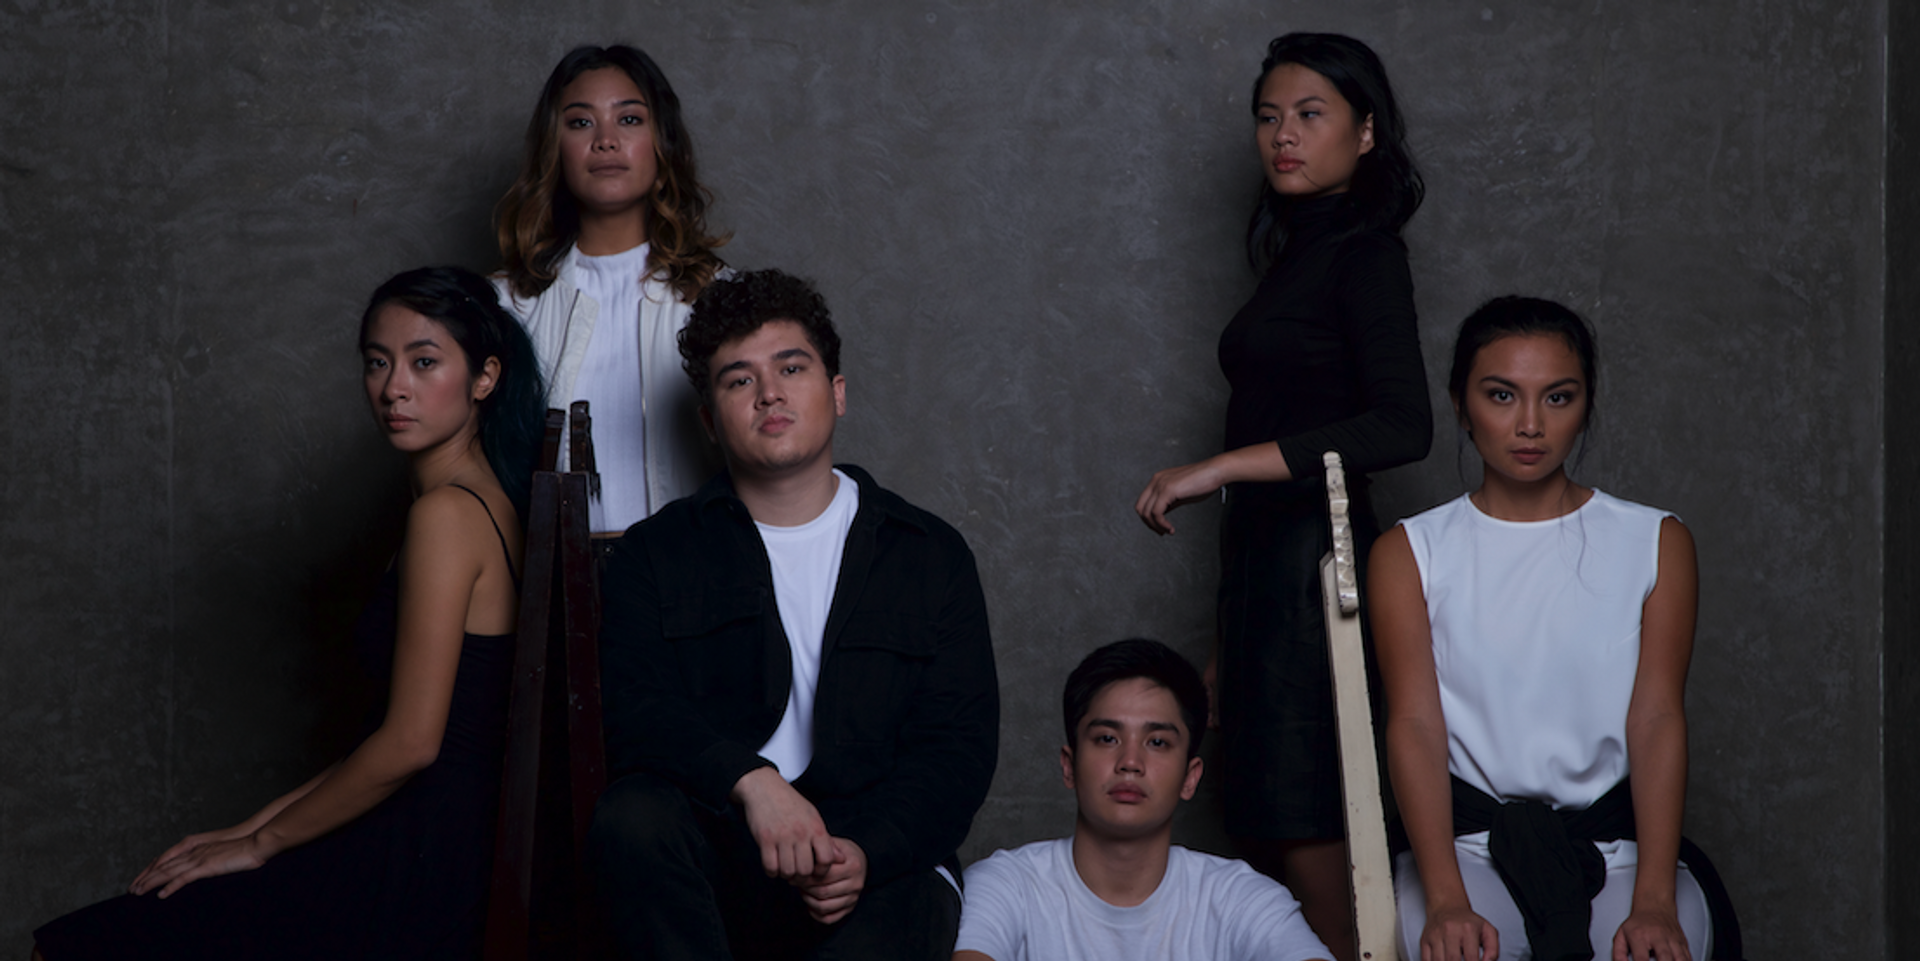 The Ransom Collective selected for Laneway Festival 2018